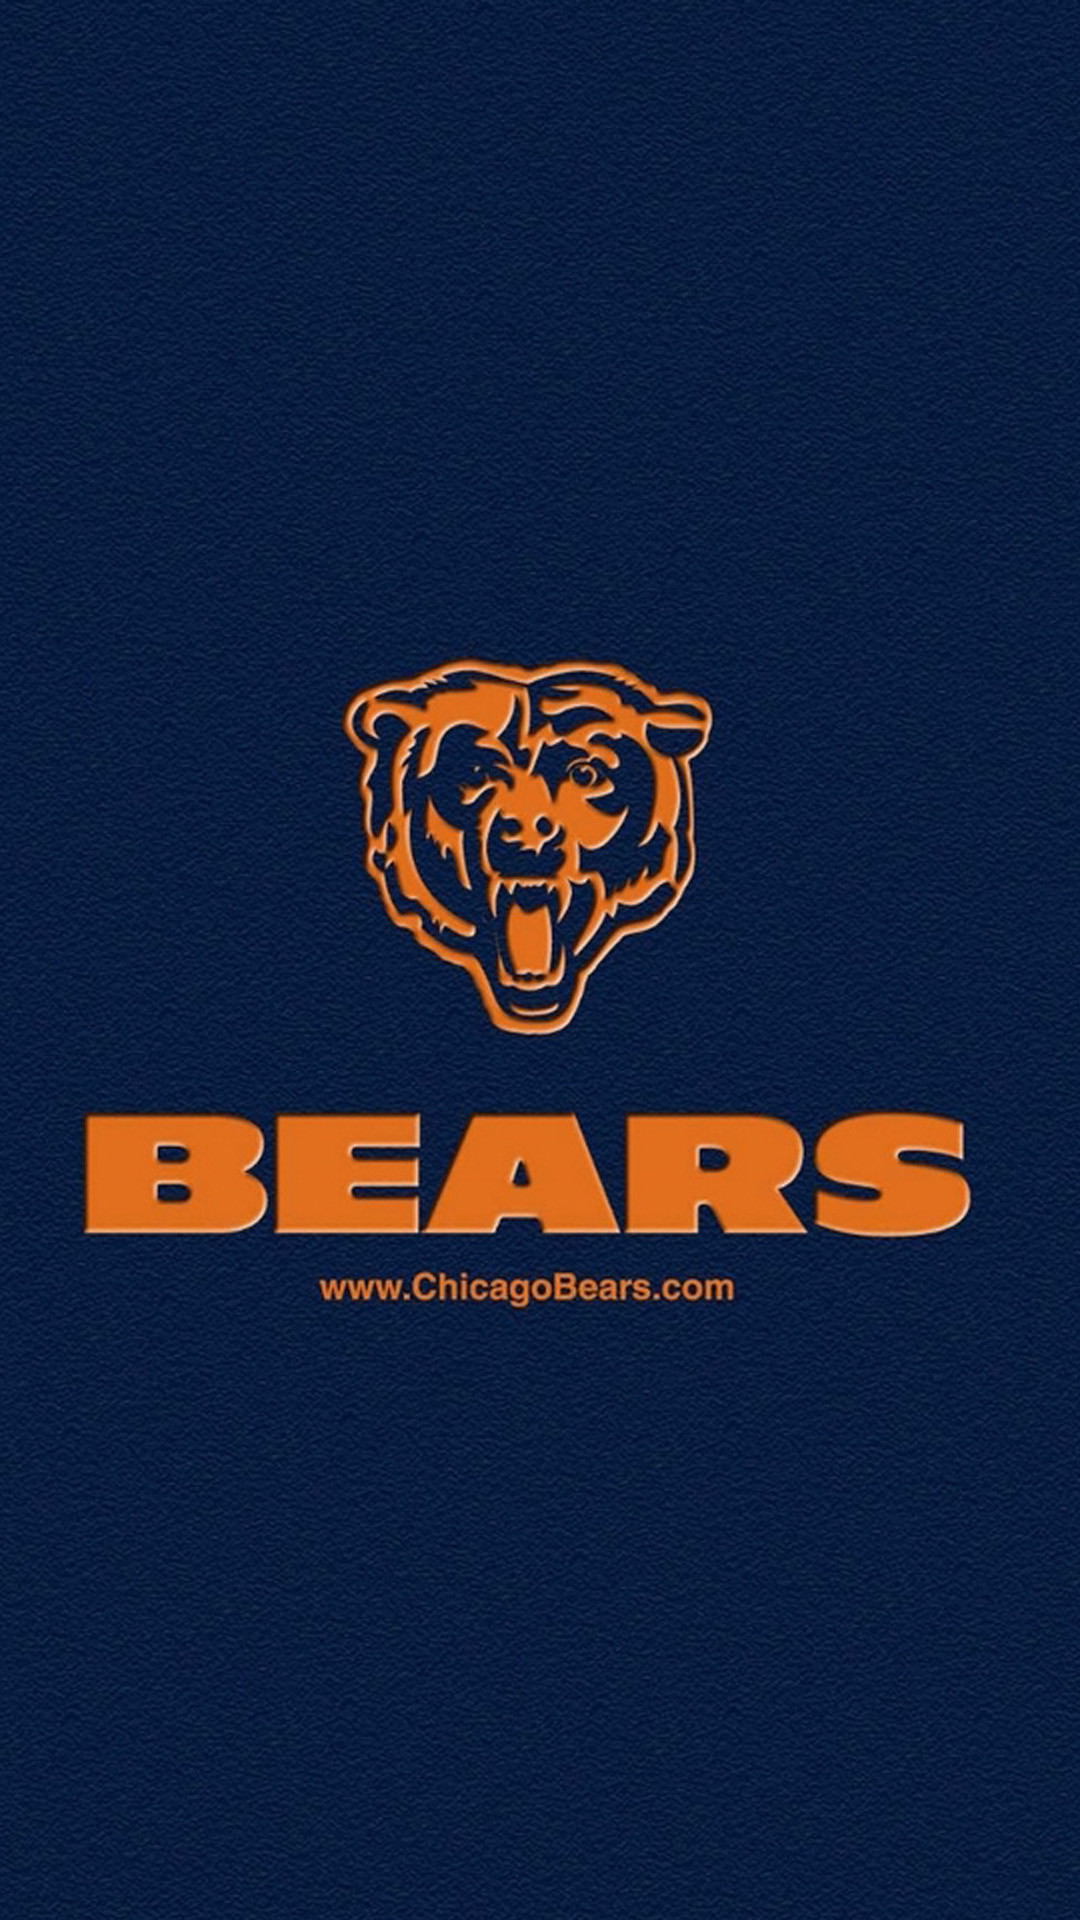 … chicago cubs wallpaper qige87 com; chicago bears wallpaper for android  download image gallery hcpr …